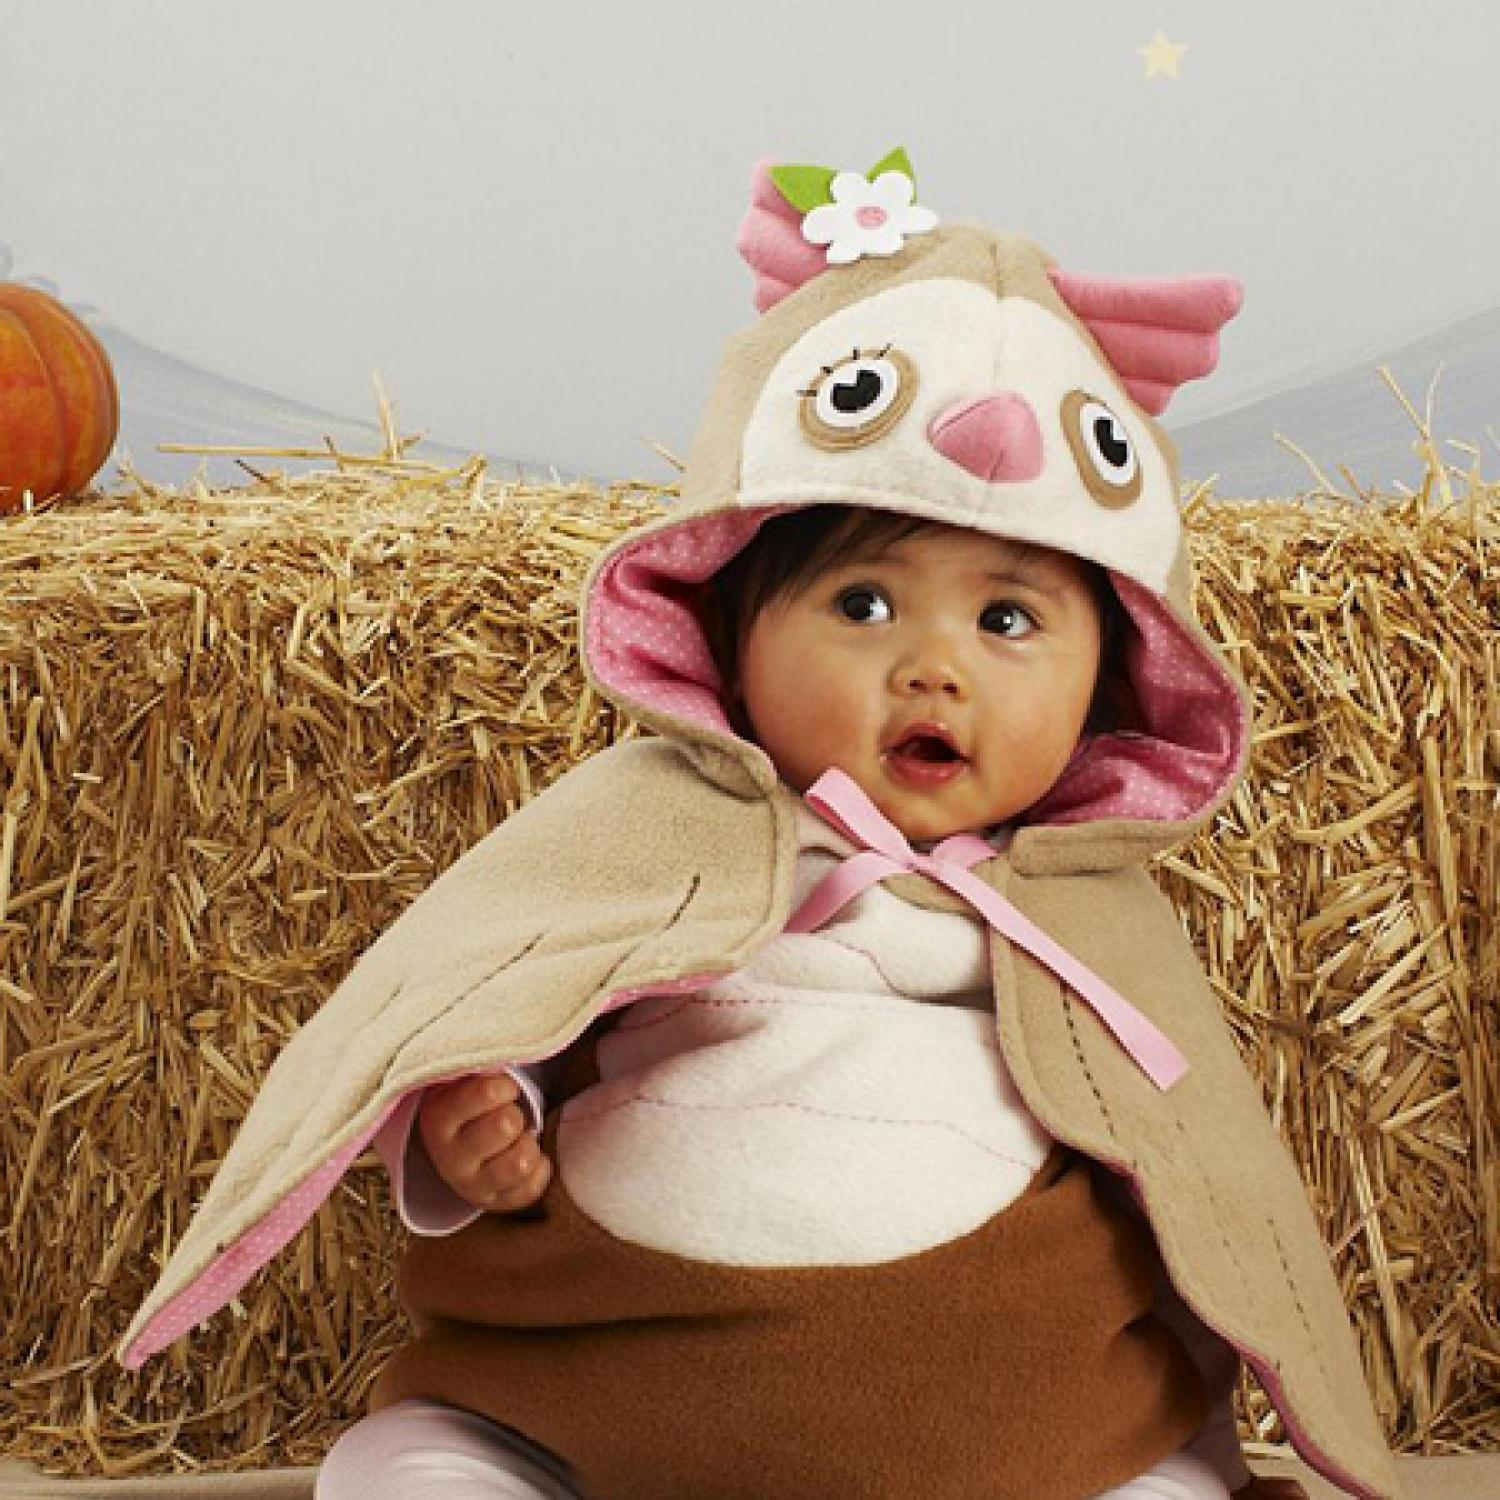 10 Cutest Halloween Costumes for Baby | Parenting